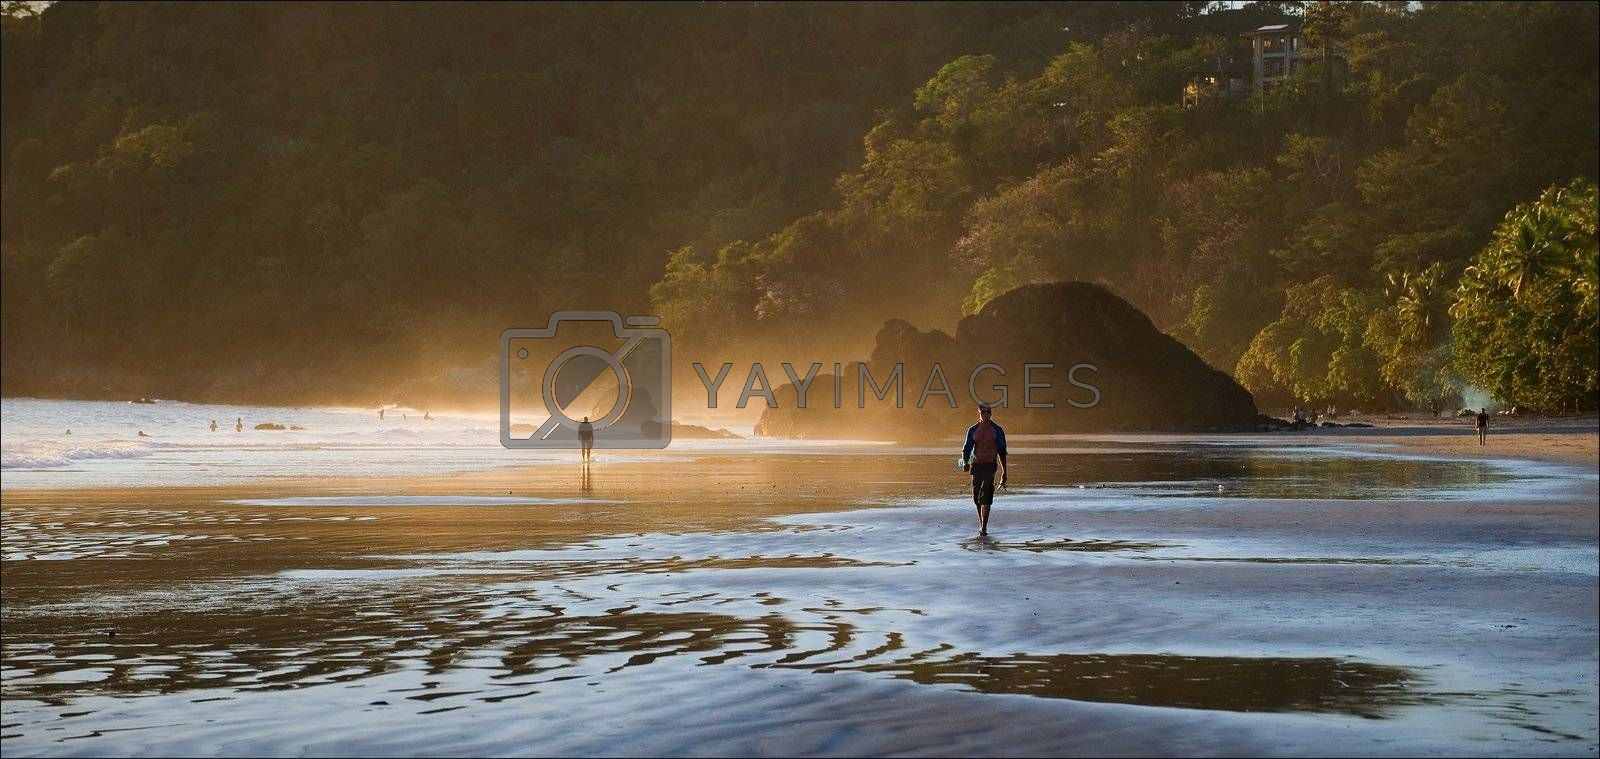 Dawn at coast of Pacific ocean. Wet sand, foggy a smoke and the walking person.